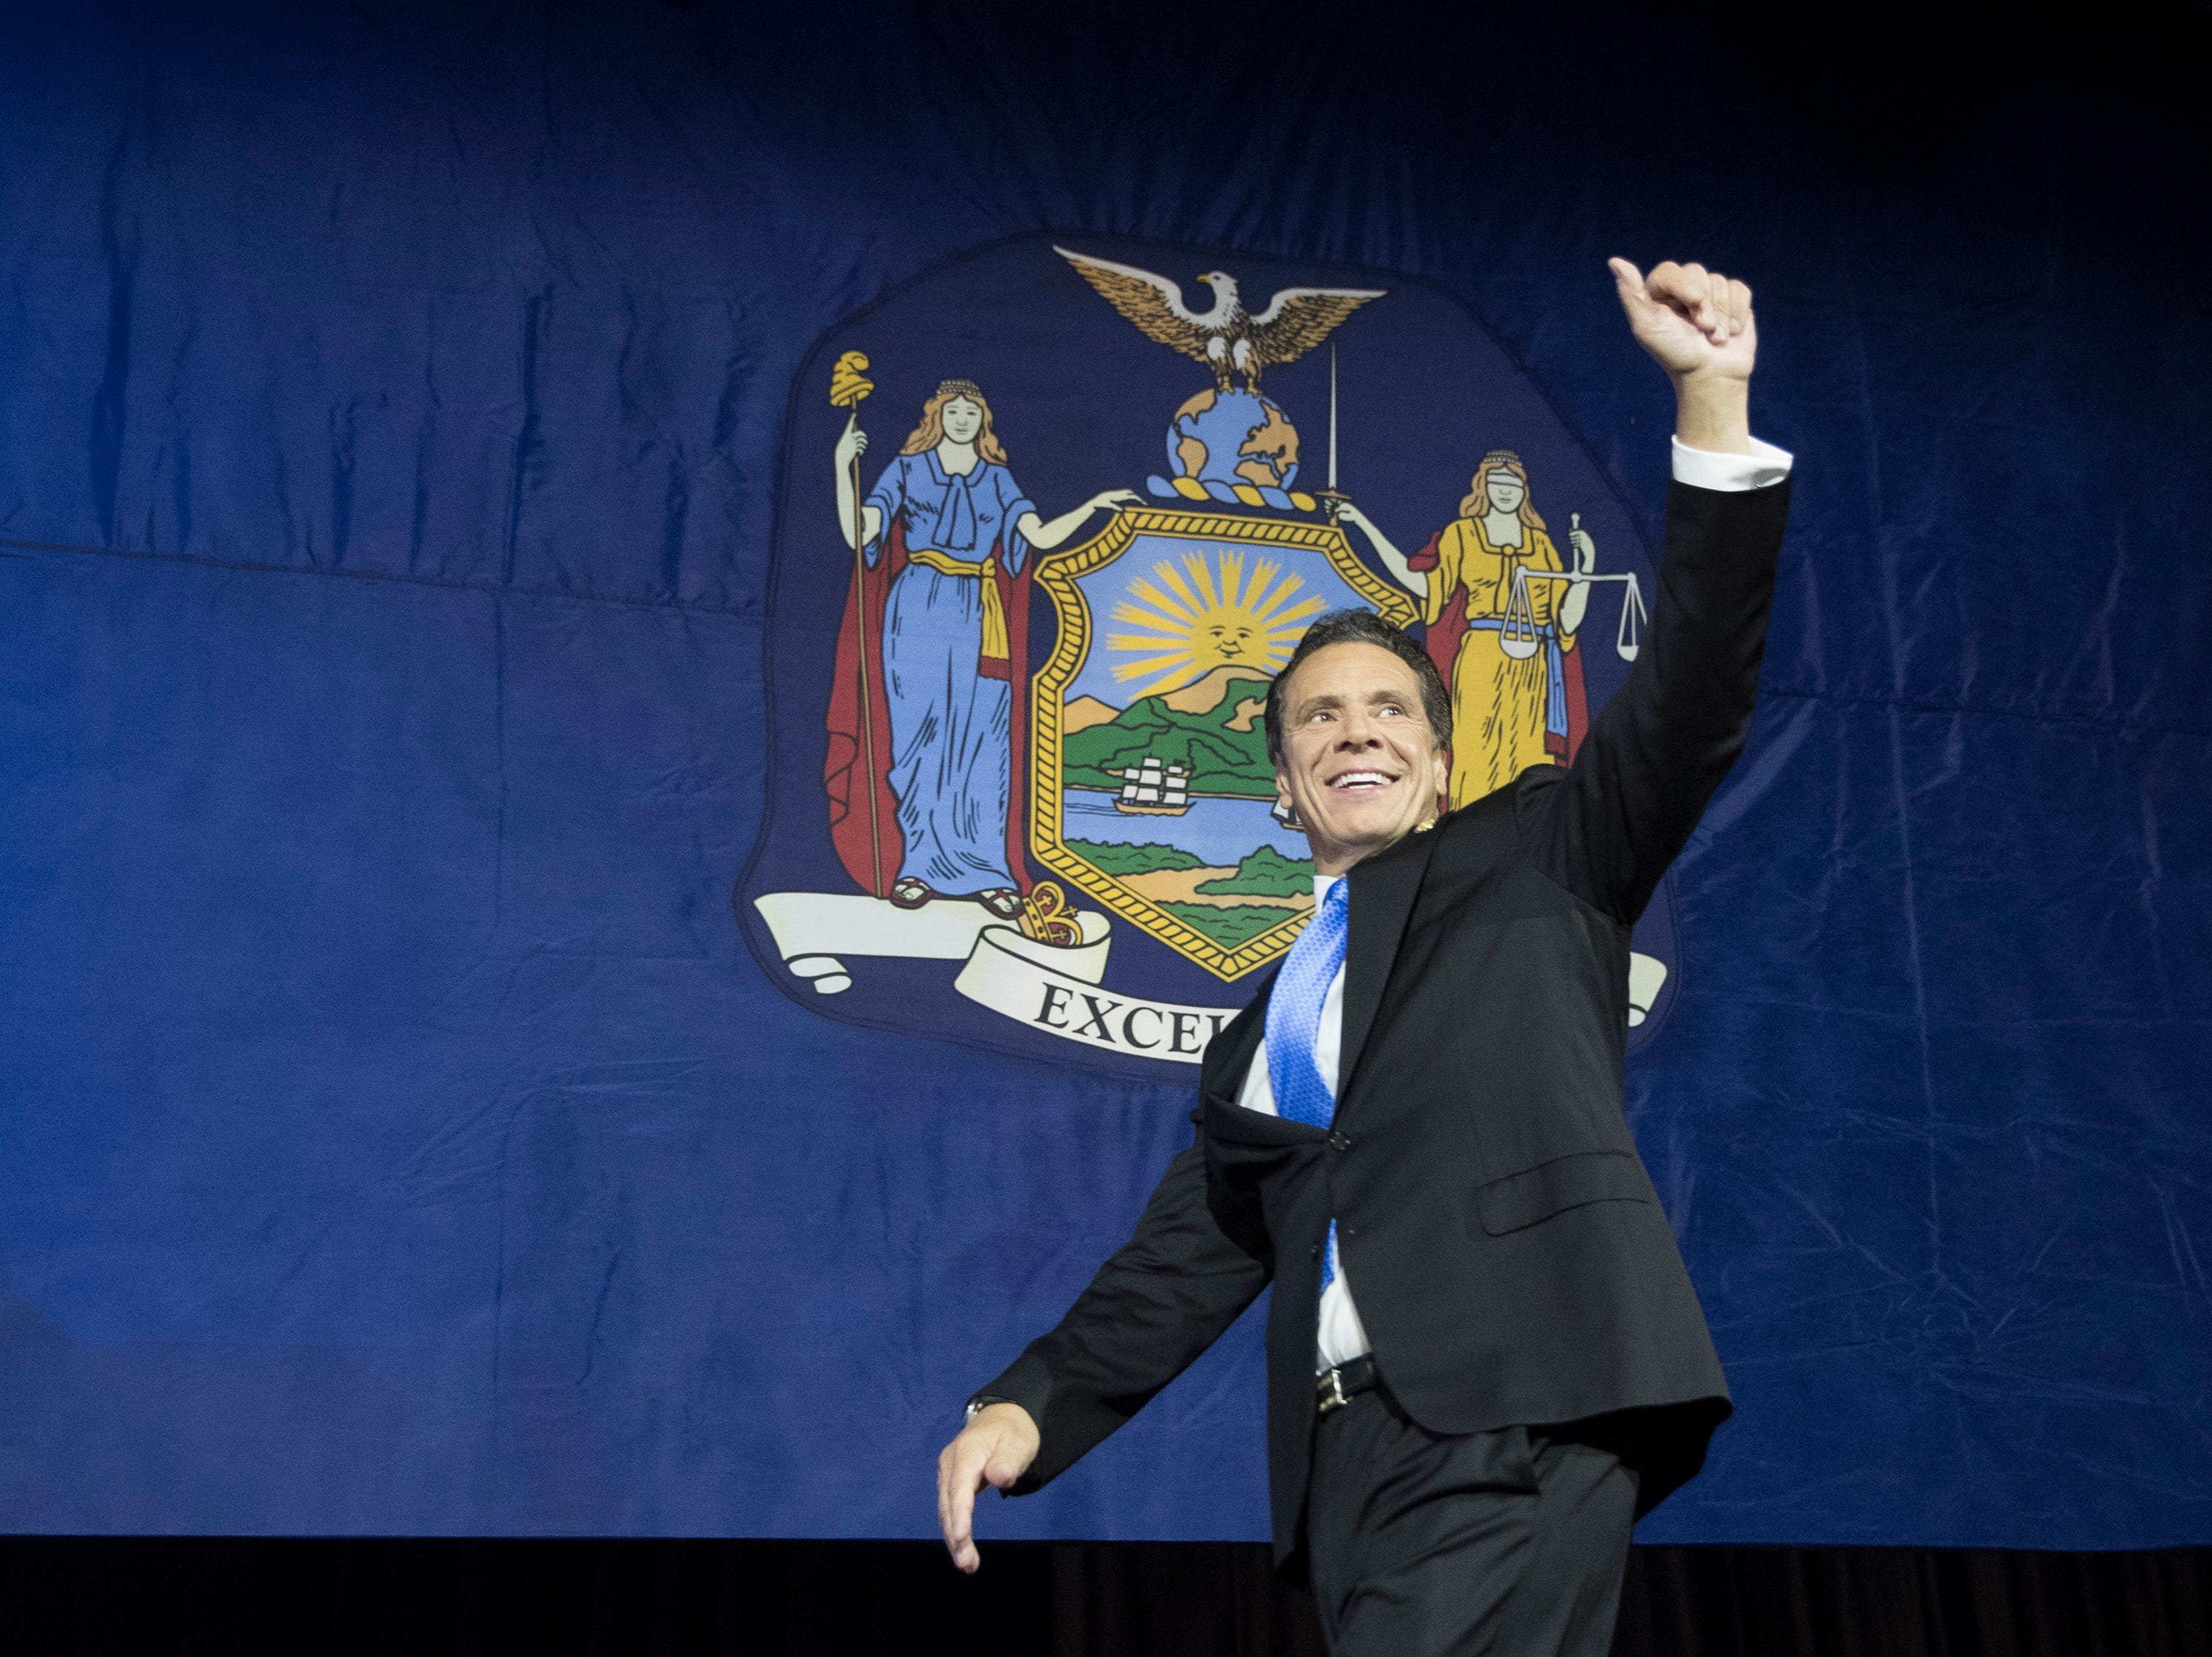 New York Gov. Andrew Cuomo arrives on stage after being reelected during an election night watch party hosted by the New York State Democratic Committee, Tuesday, Nov. 6, 2018, in New York.